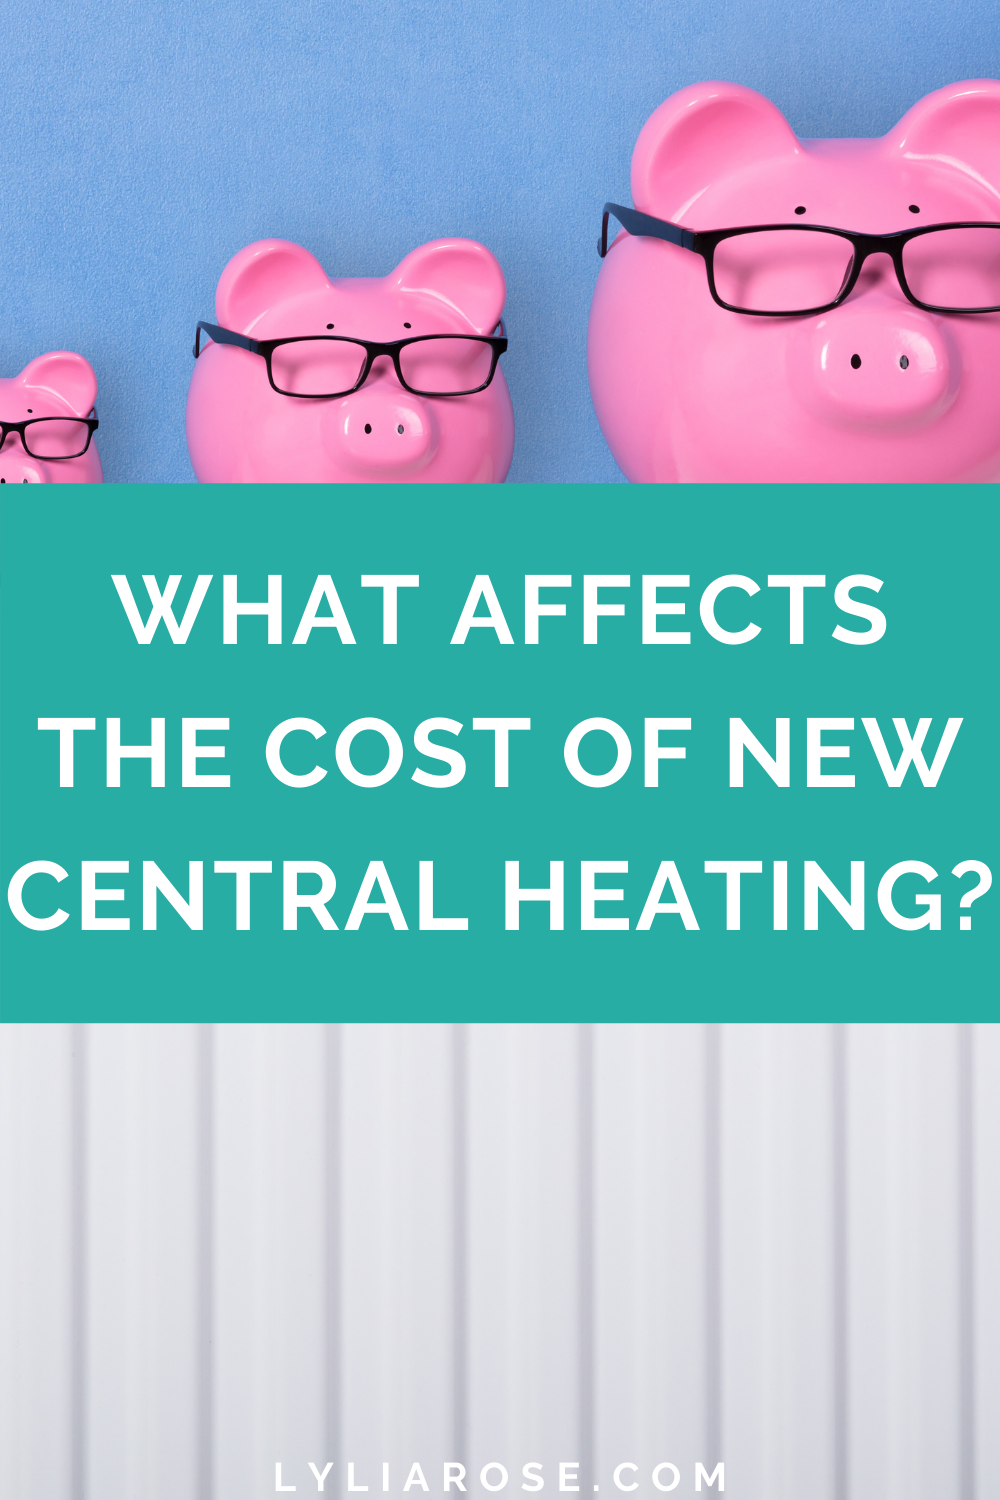 What affects the cost of new central heating